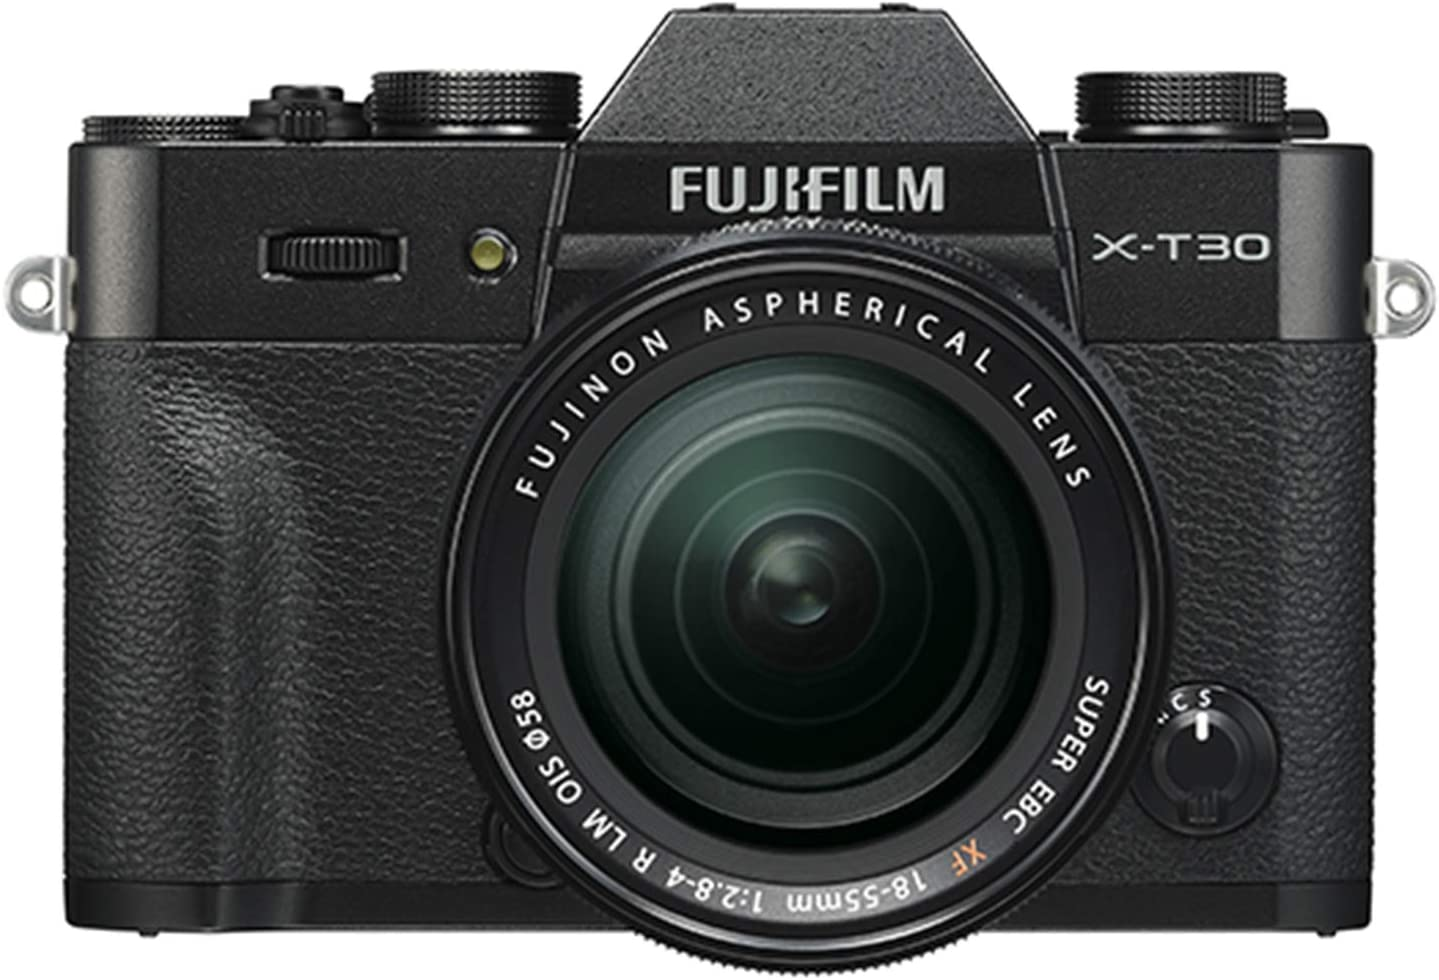 Fujifilm X-T30 | best camera for beauty photography